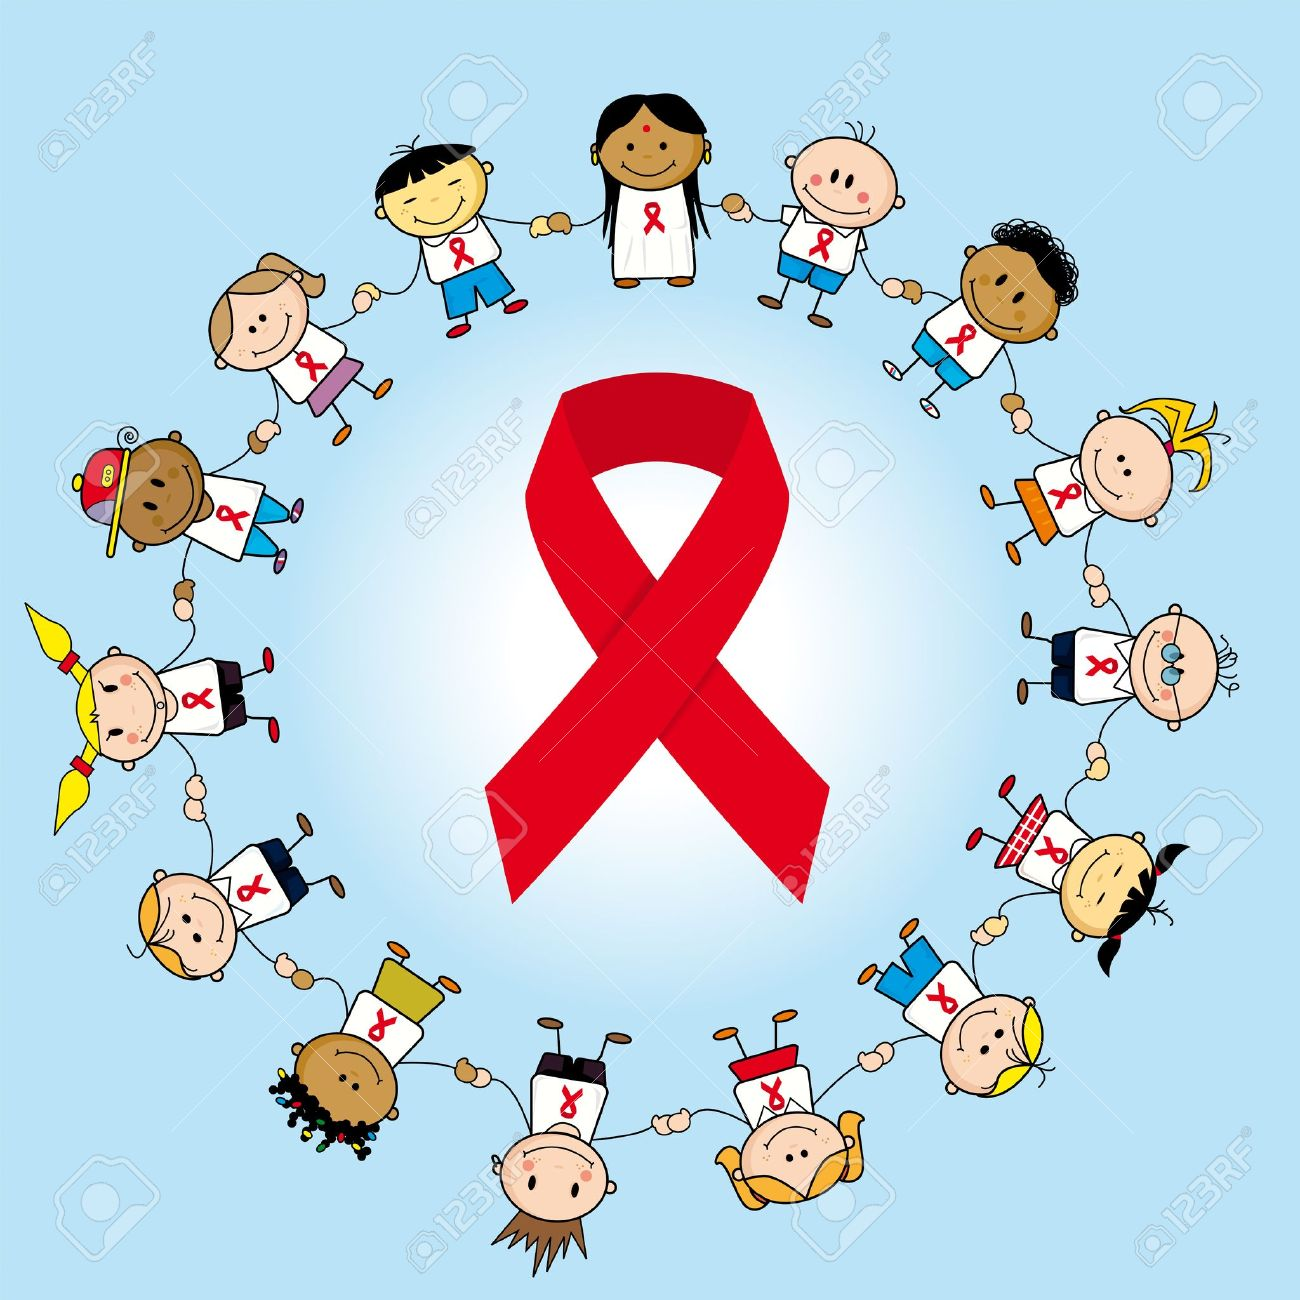 https://previews.123rf.com/images/tintin75/tintin751111/tintin75111100008/11291799-group-of-childrens-around-aids-ribbon-.jpg